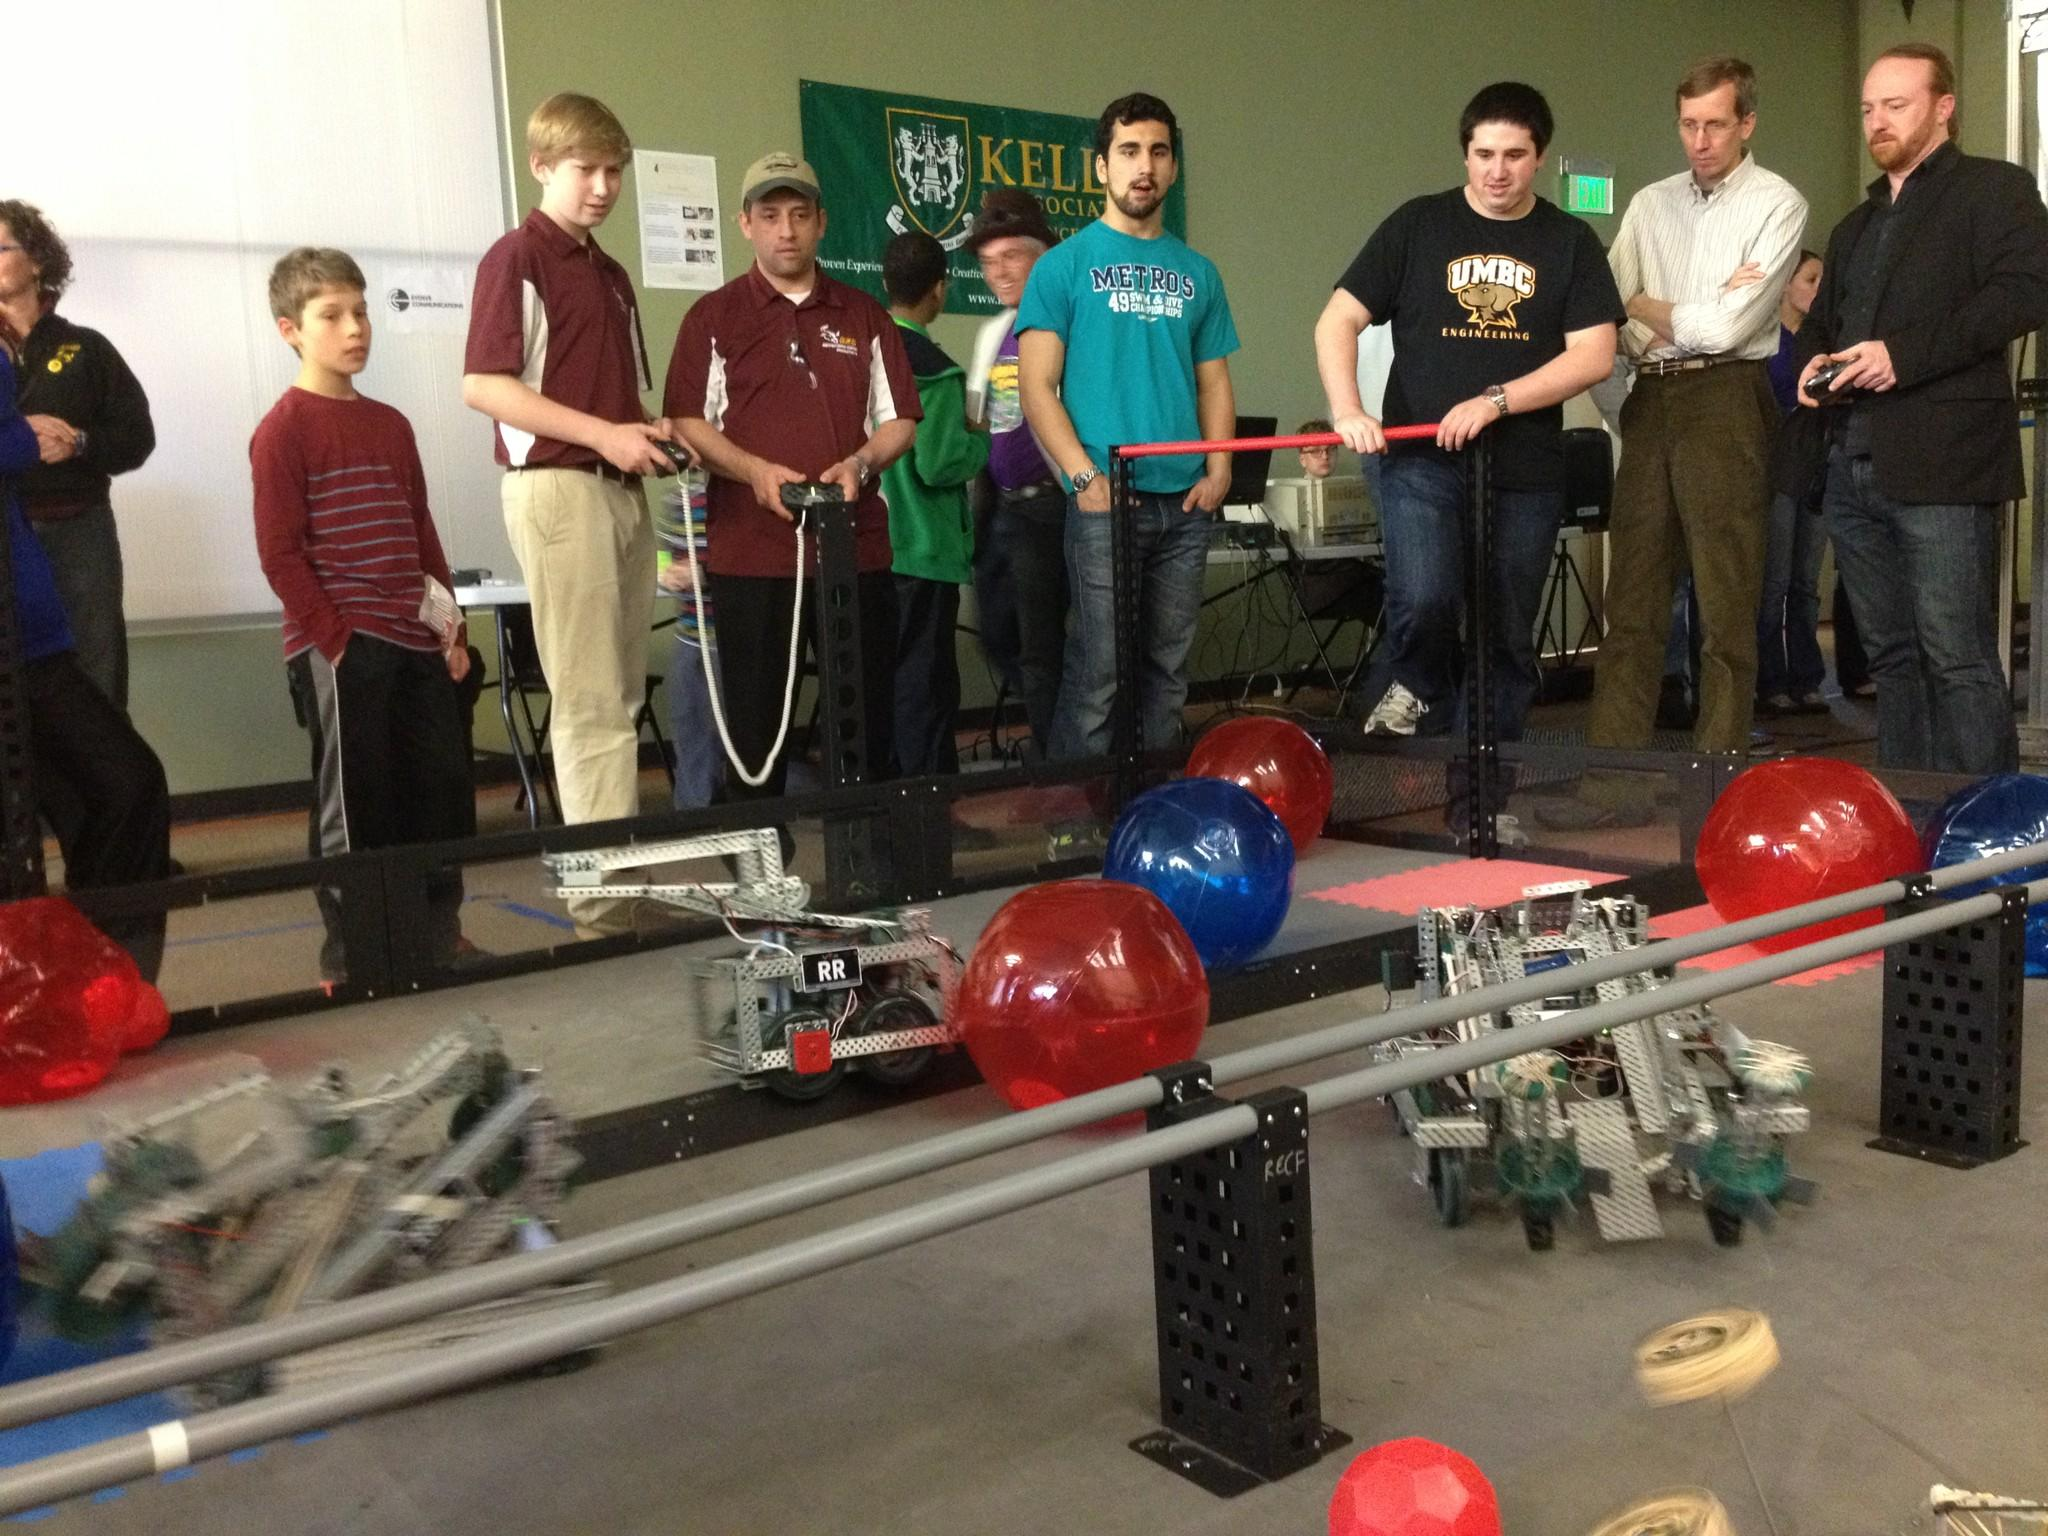 The Baltimore Robotics Center held a charity tournament to benefit teams in the Vex High School Robotics League, featuring area CEOs as competitors operating robots built by students.